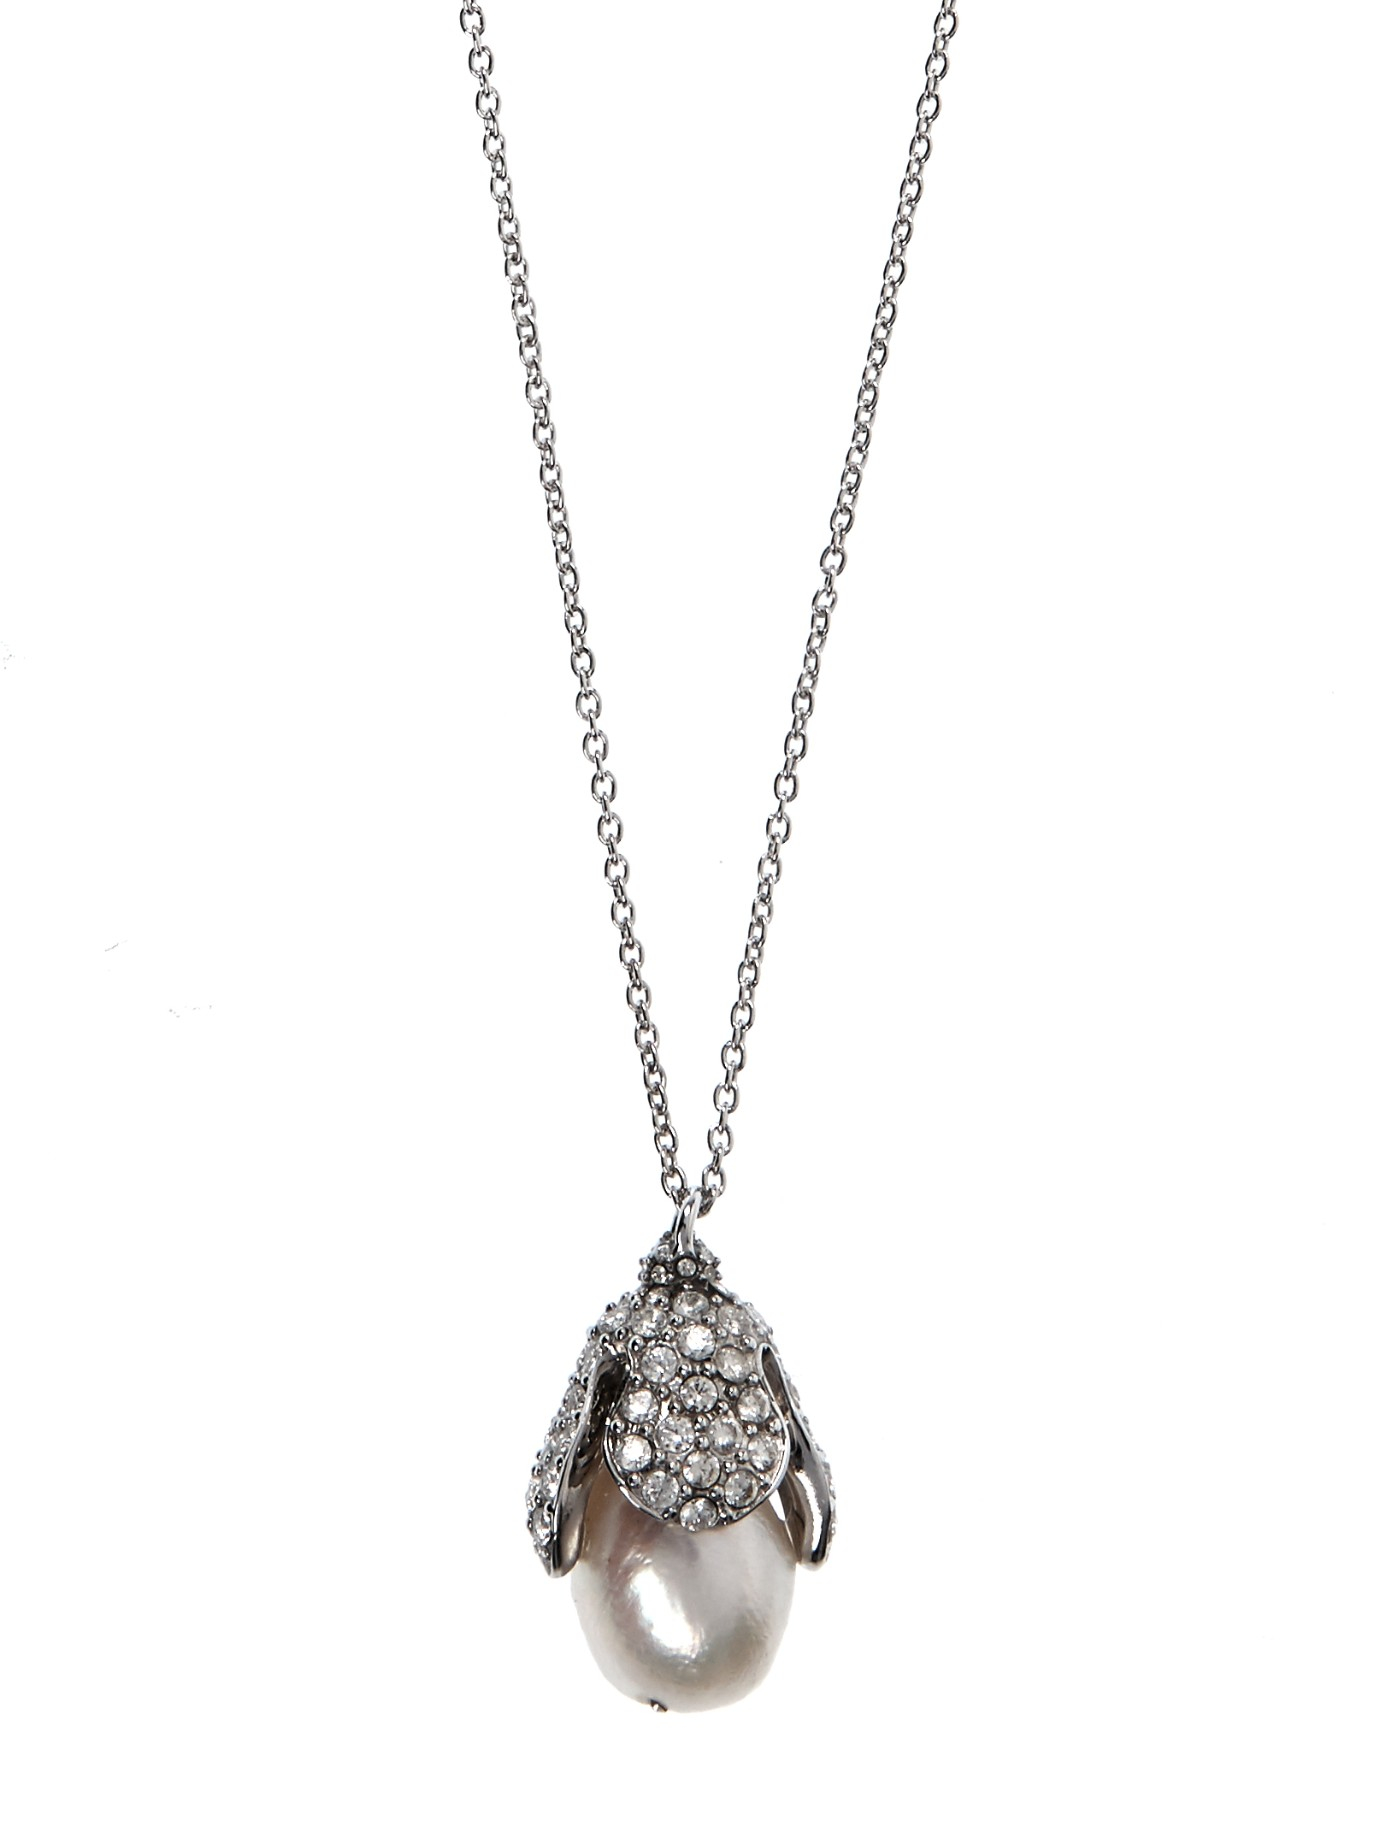 Balenciaga Eugenia Pearl And Crystal Necklace in Silver (Metallic)